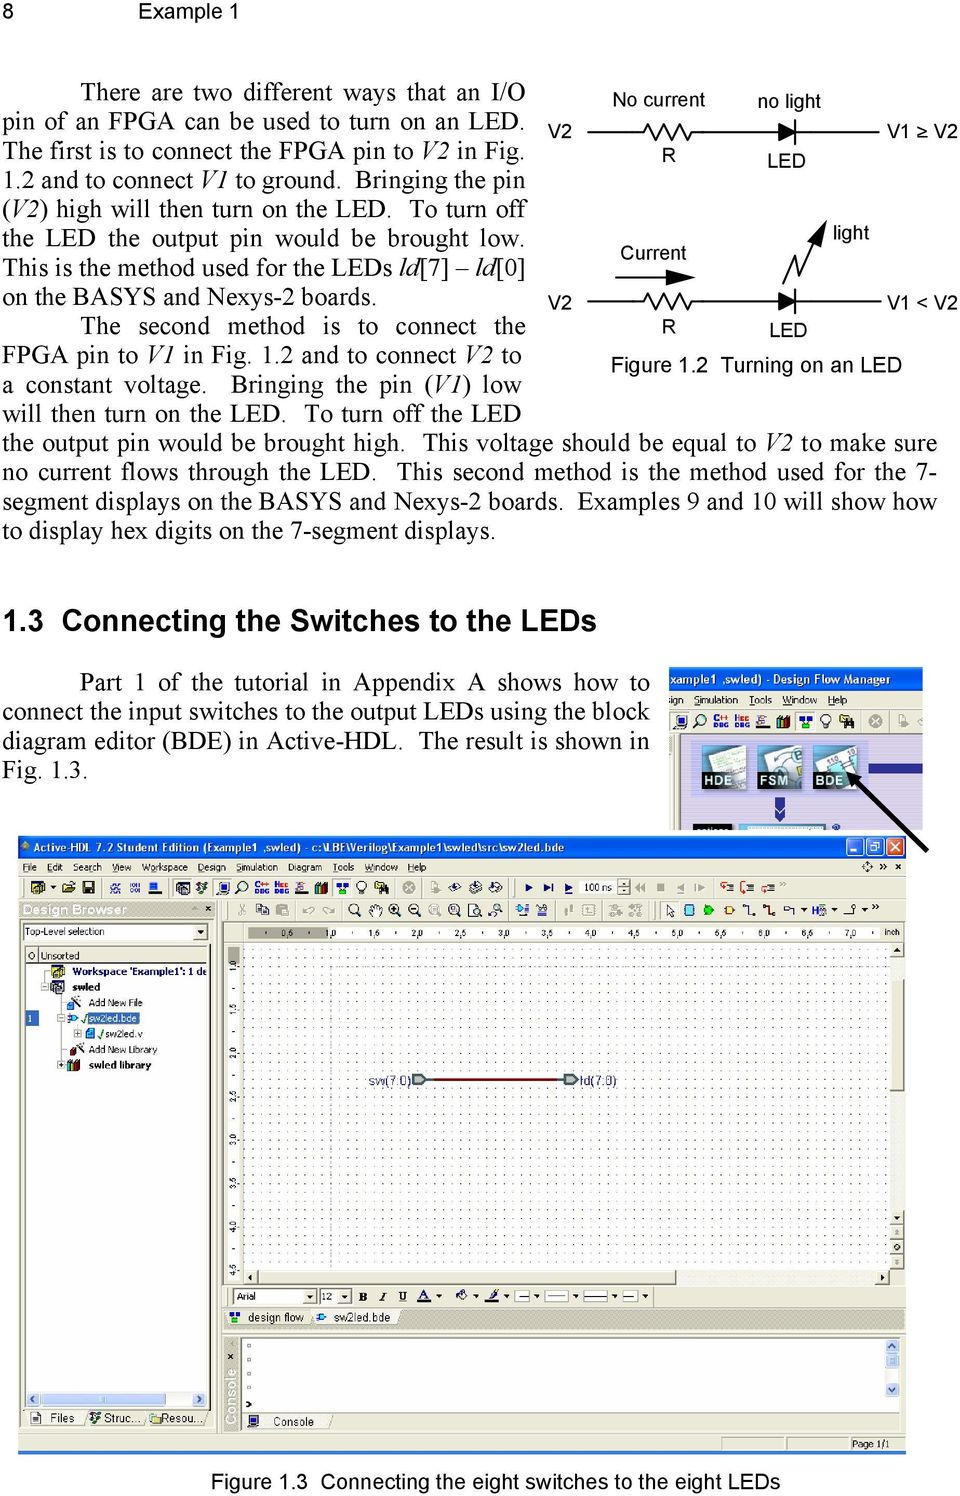 Introduction To Digital Design Using Digilent Fpga Boards Block Vhdl Diagram Free Download Wiring Schematic Light Current This Is The Method Used For Leds Ld7 Ld